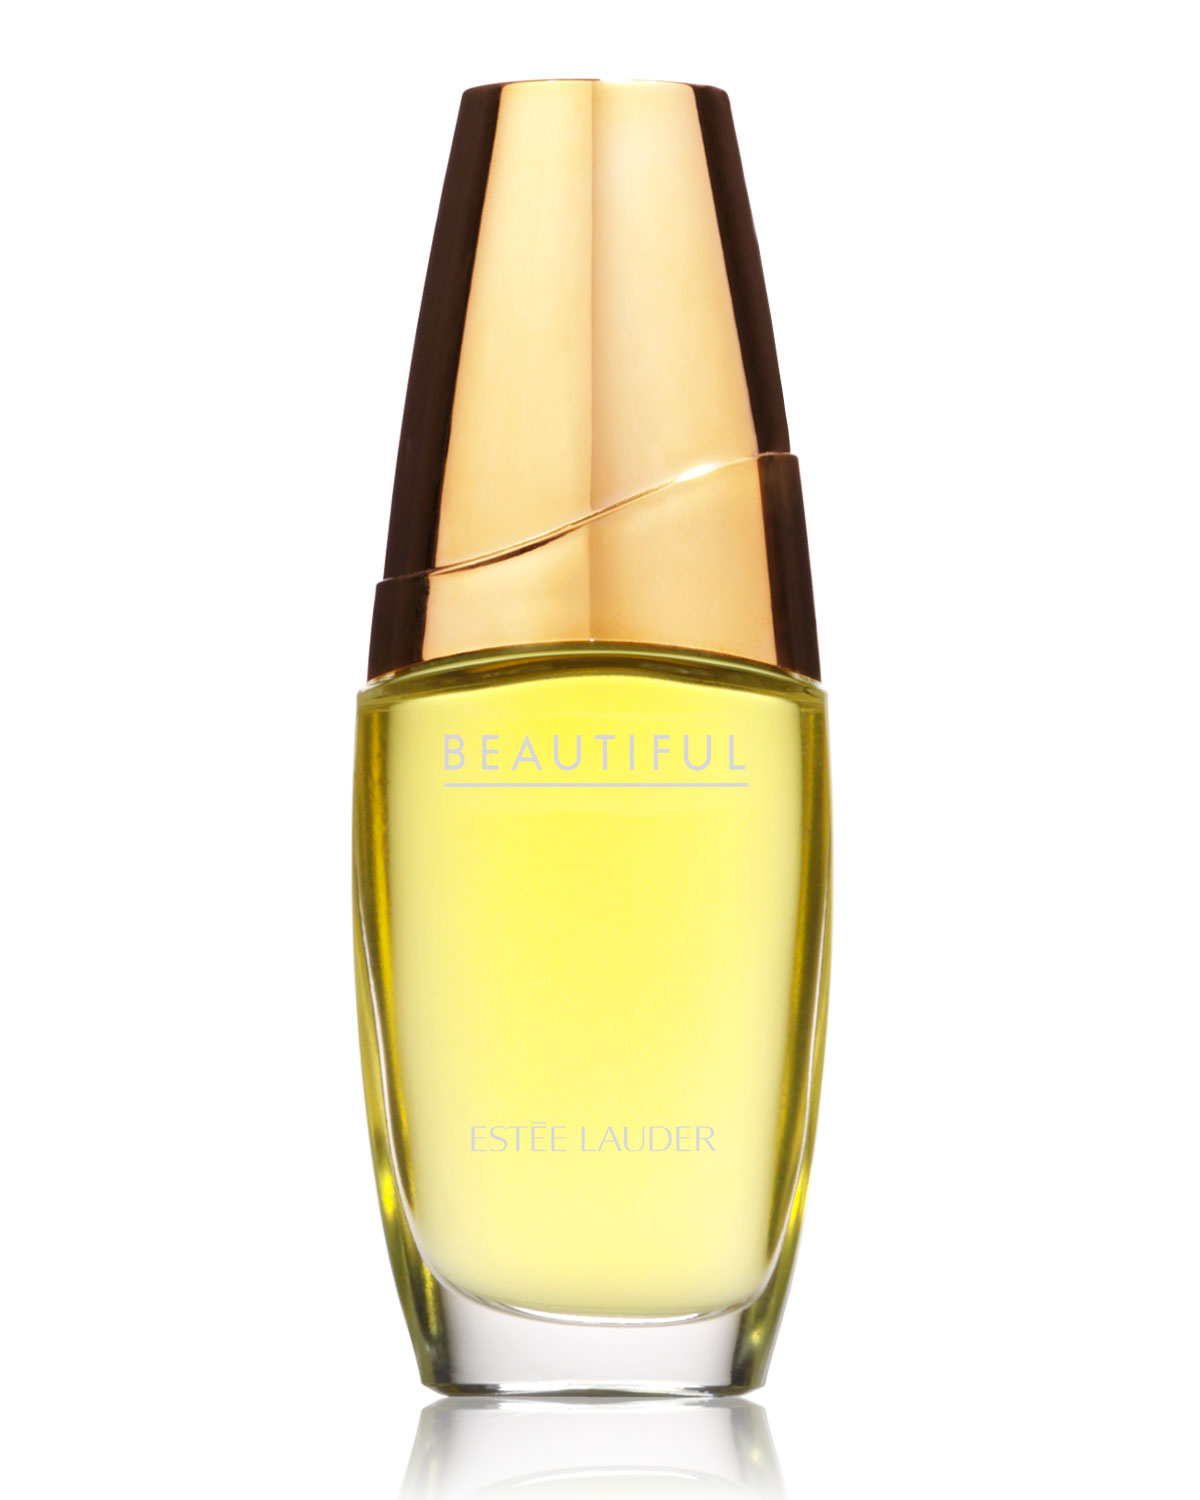 Beautiful Eau de Parfum, 1 ounce